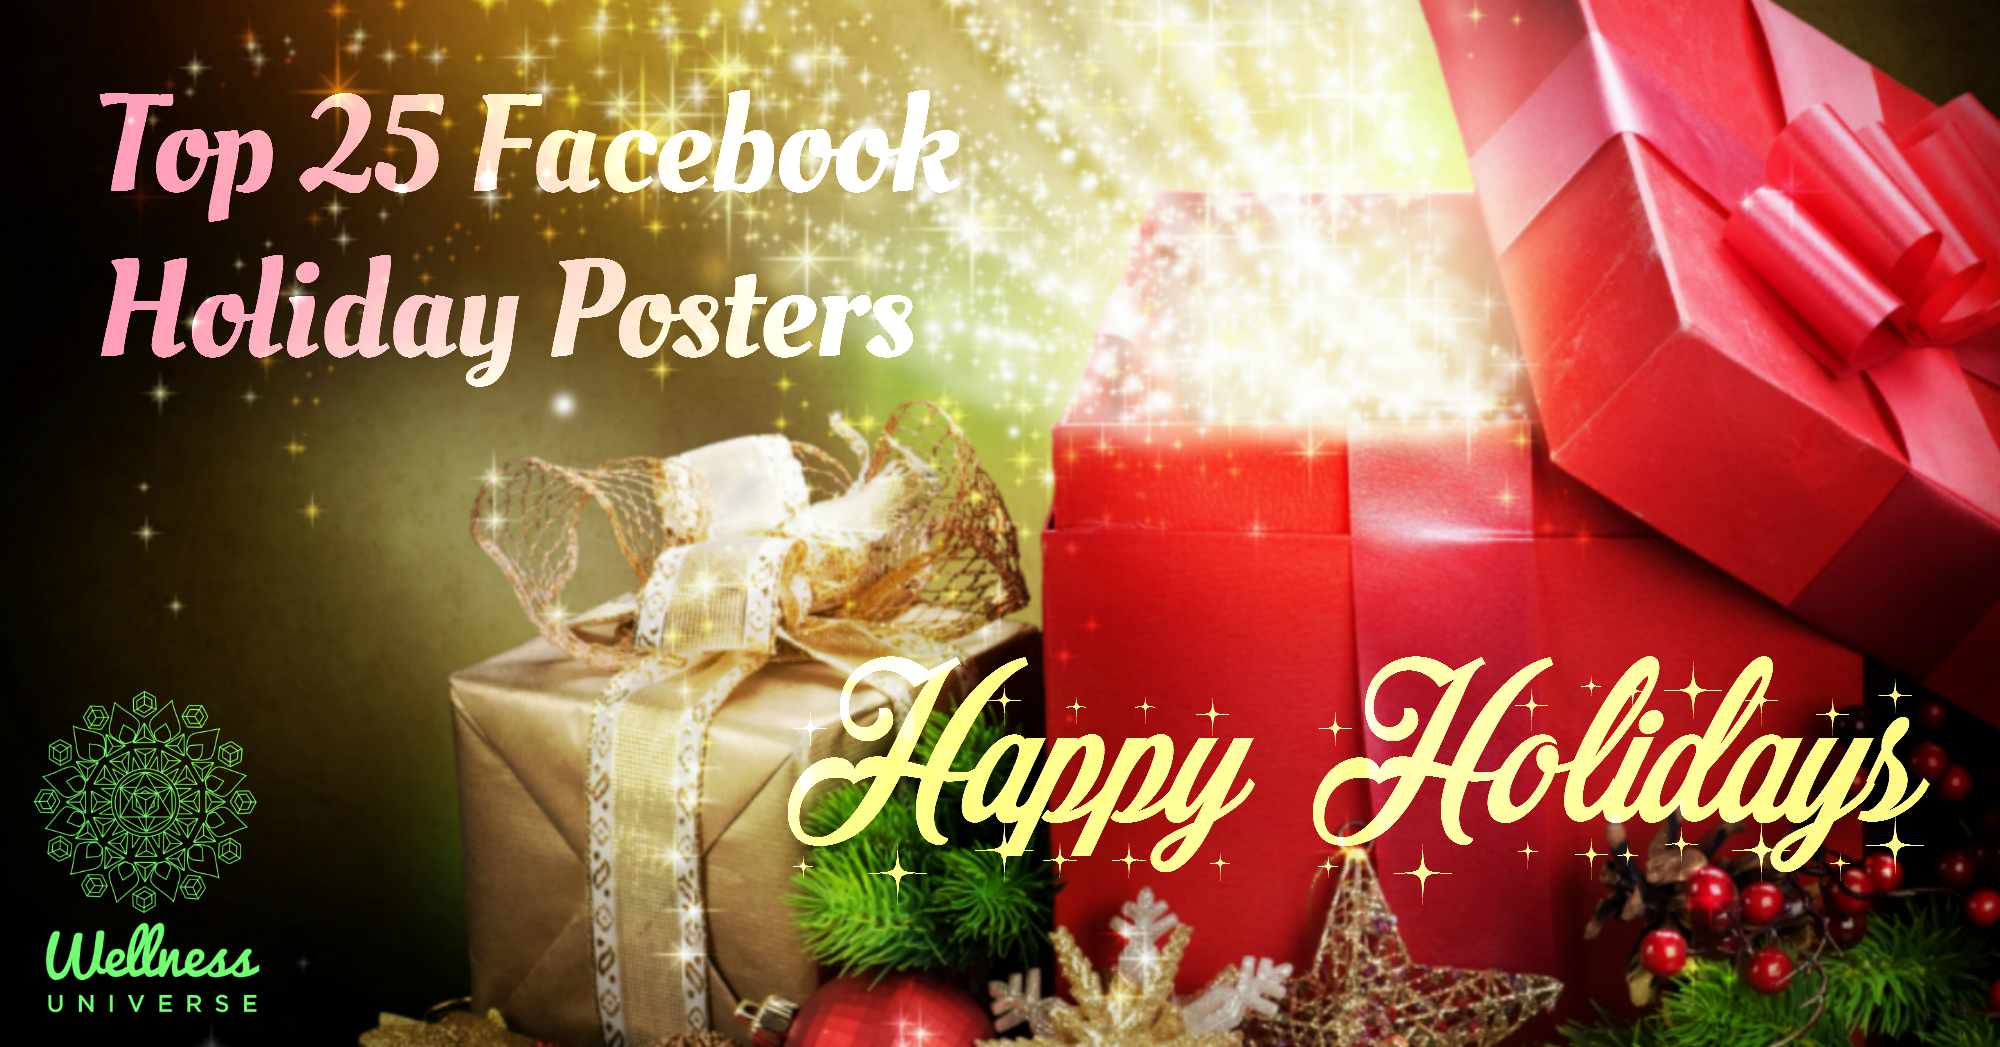 Top 25 Facebook Holiday Posters to Share - The Wellness Universe Blog